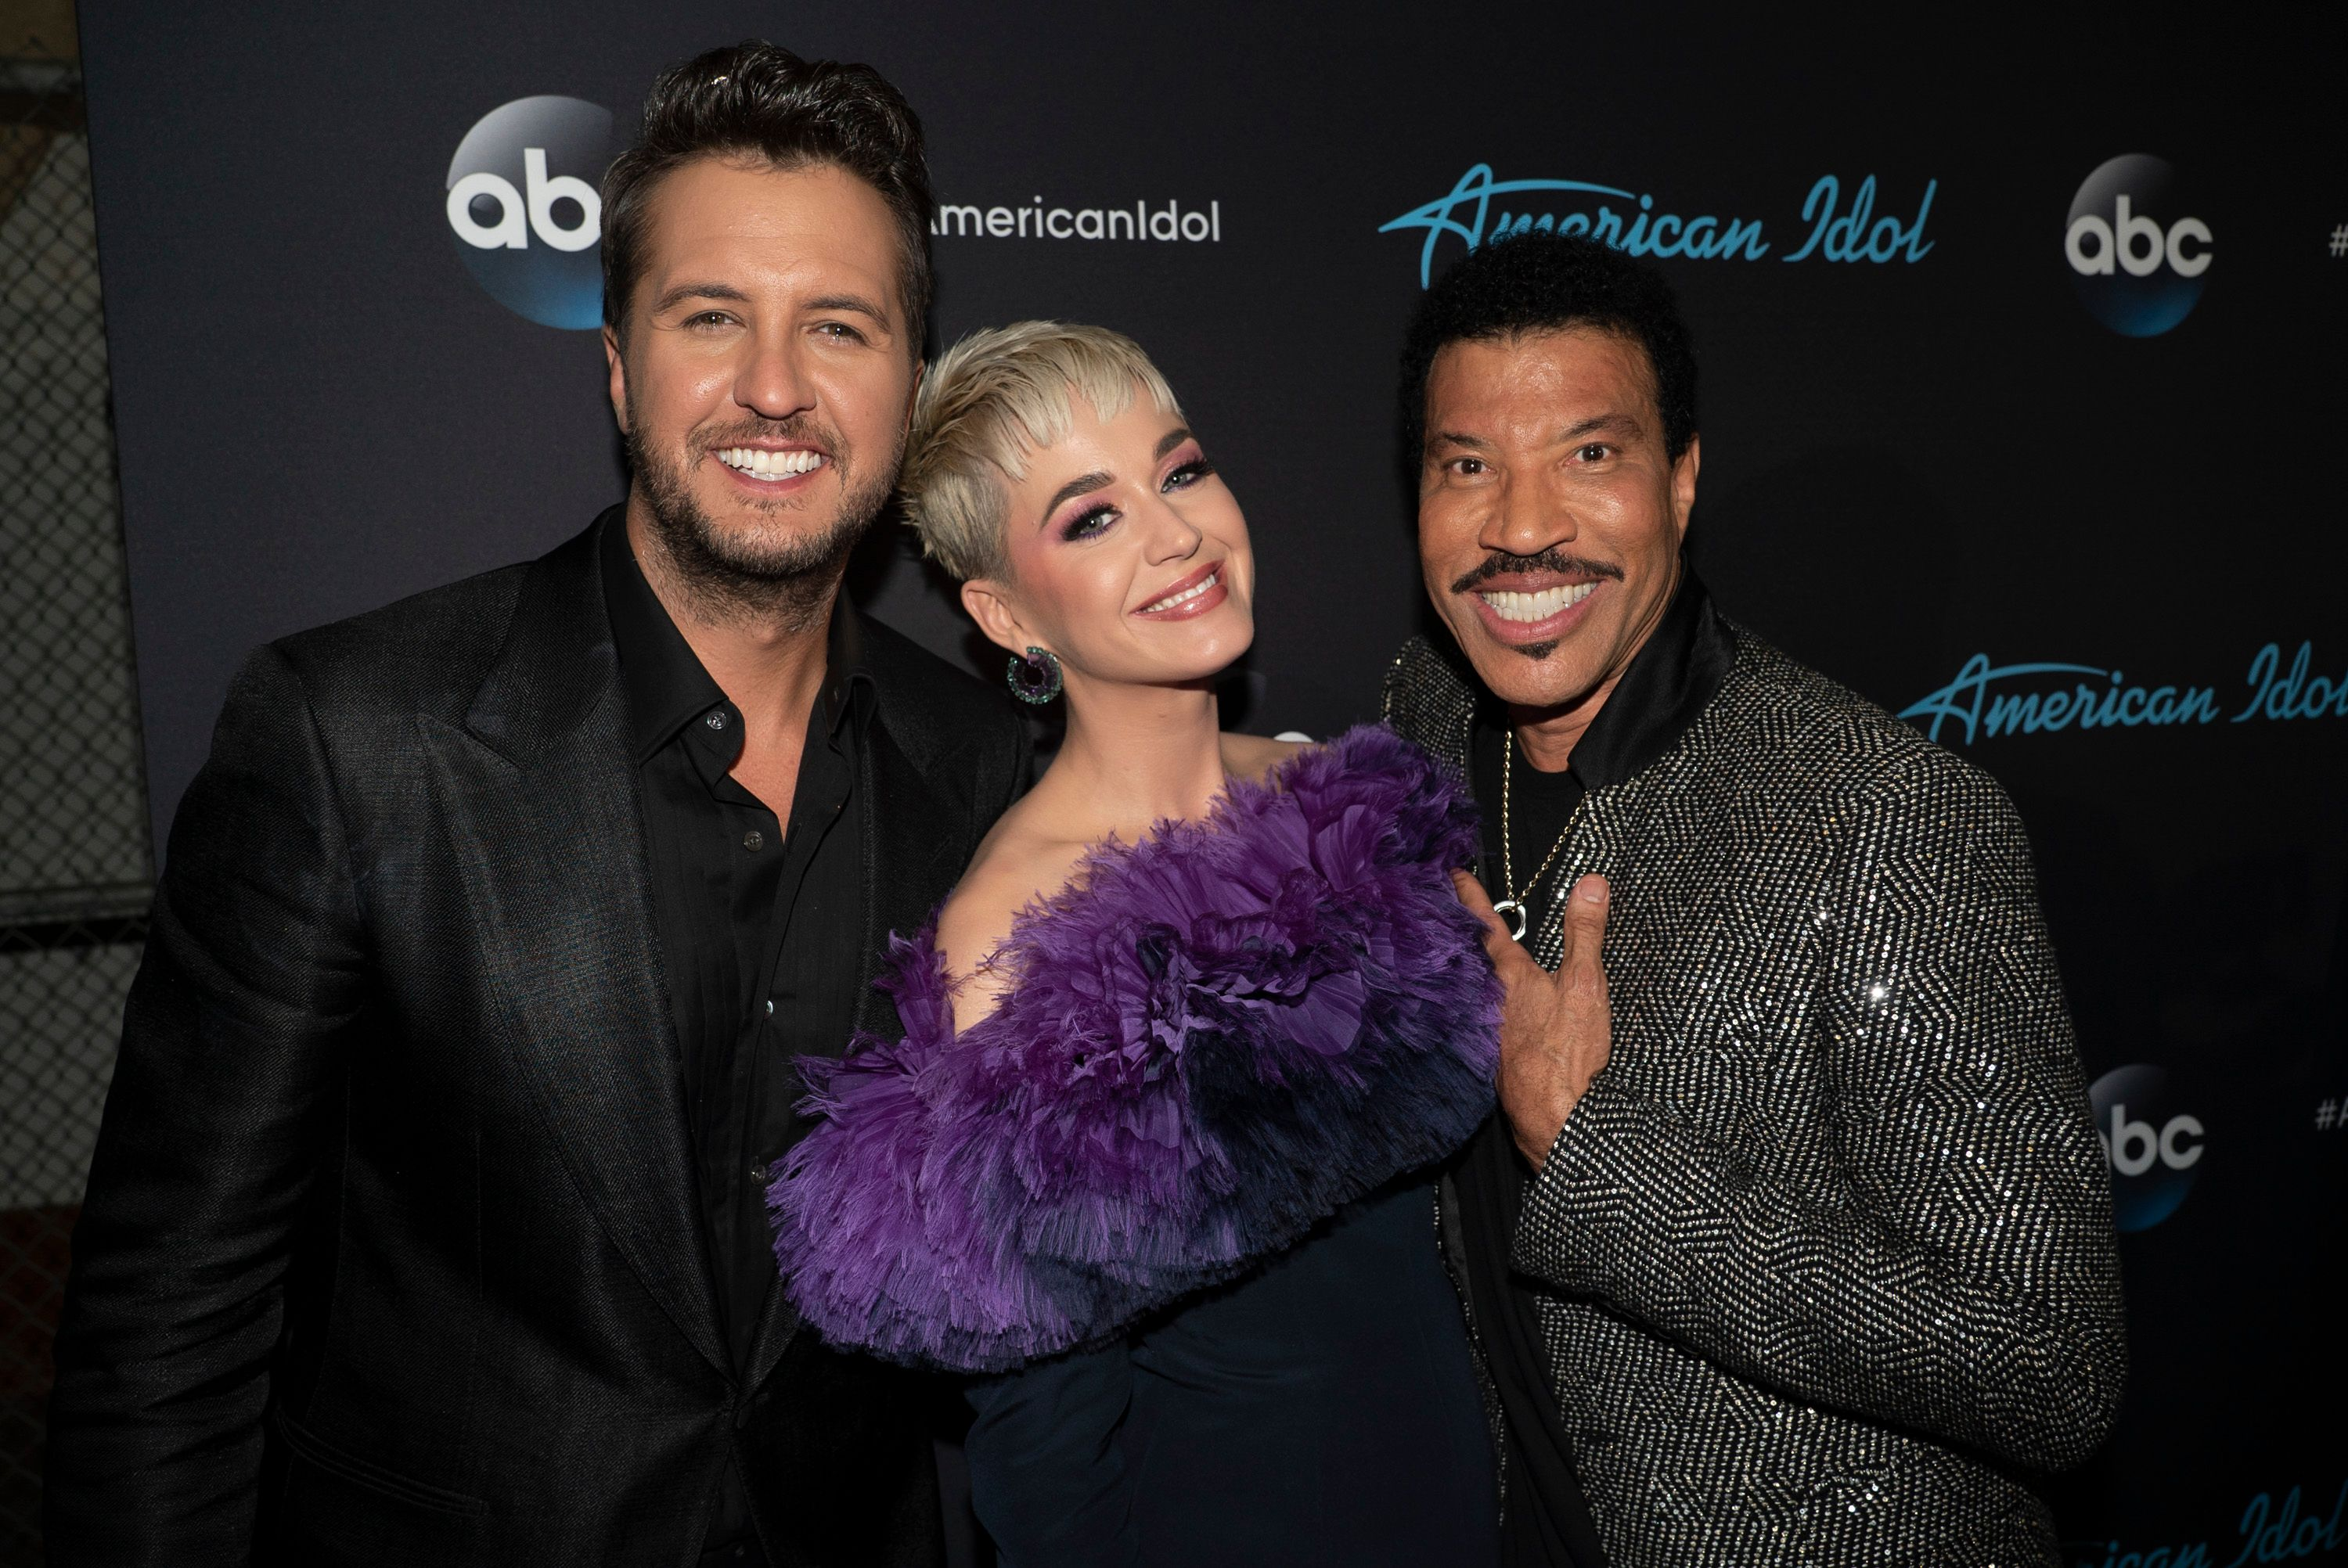 """Luke Bryan, Katy Perry, and Lionel Richie on the set of """"American Idol"""" on May 21, 2018.   Photo: Getty Images"""